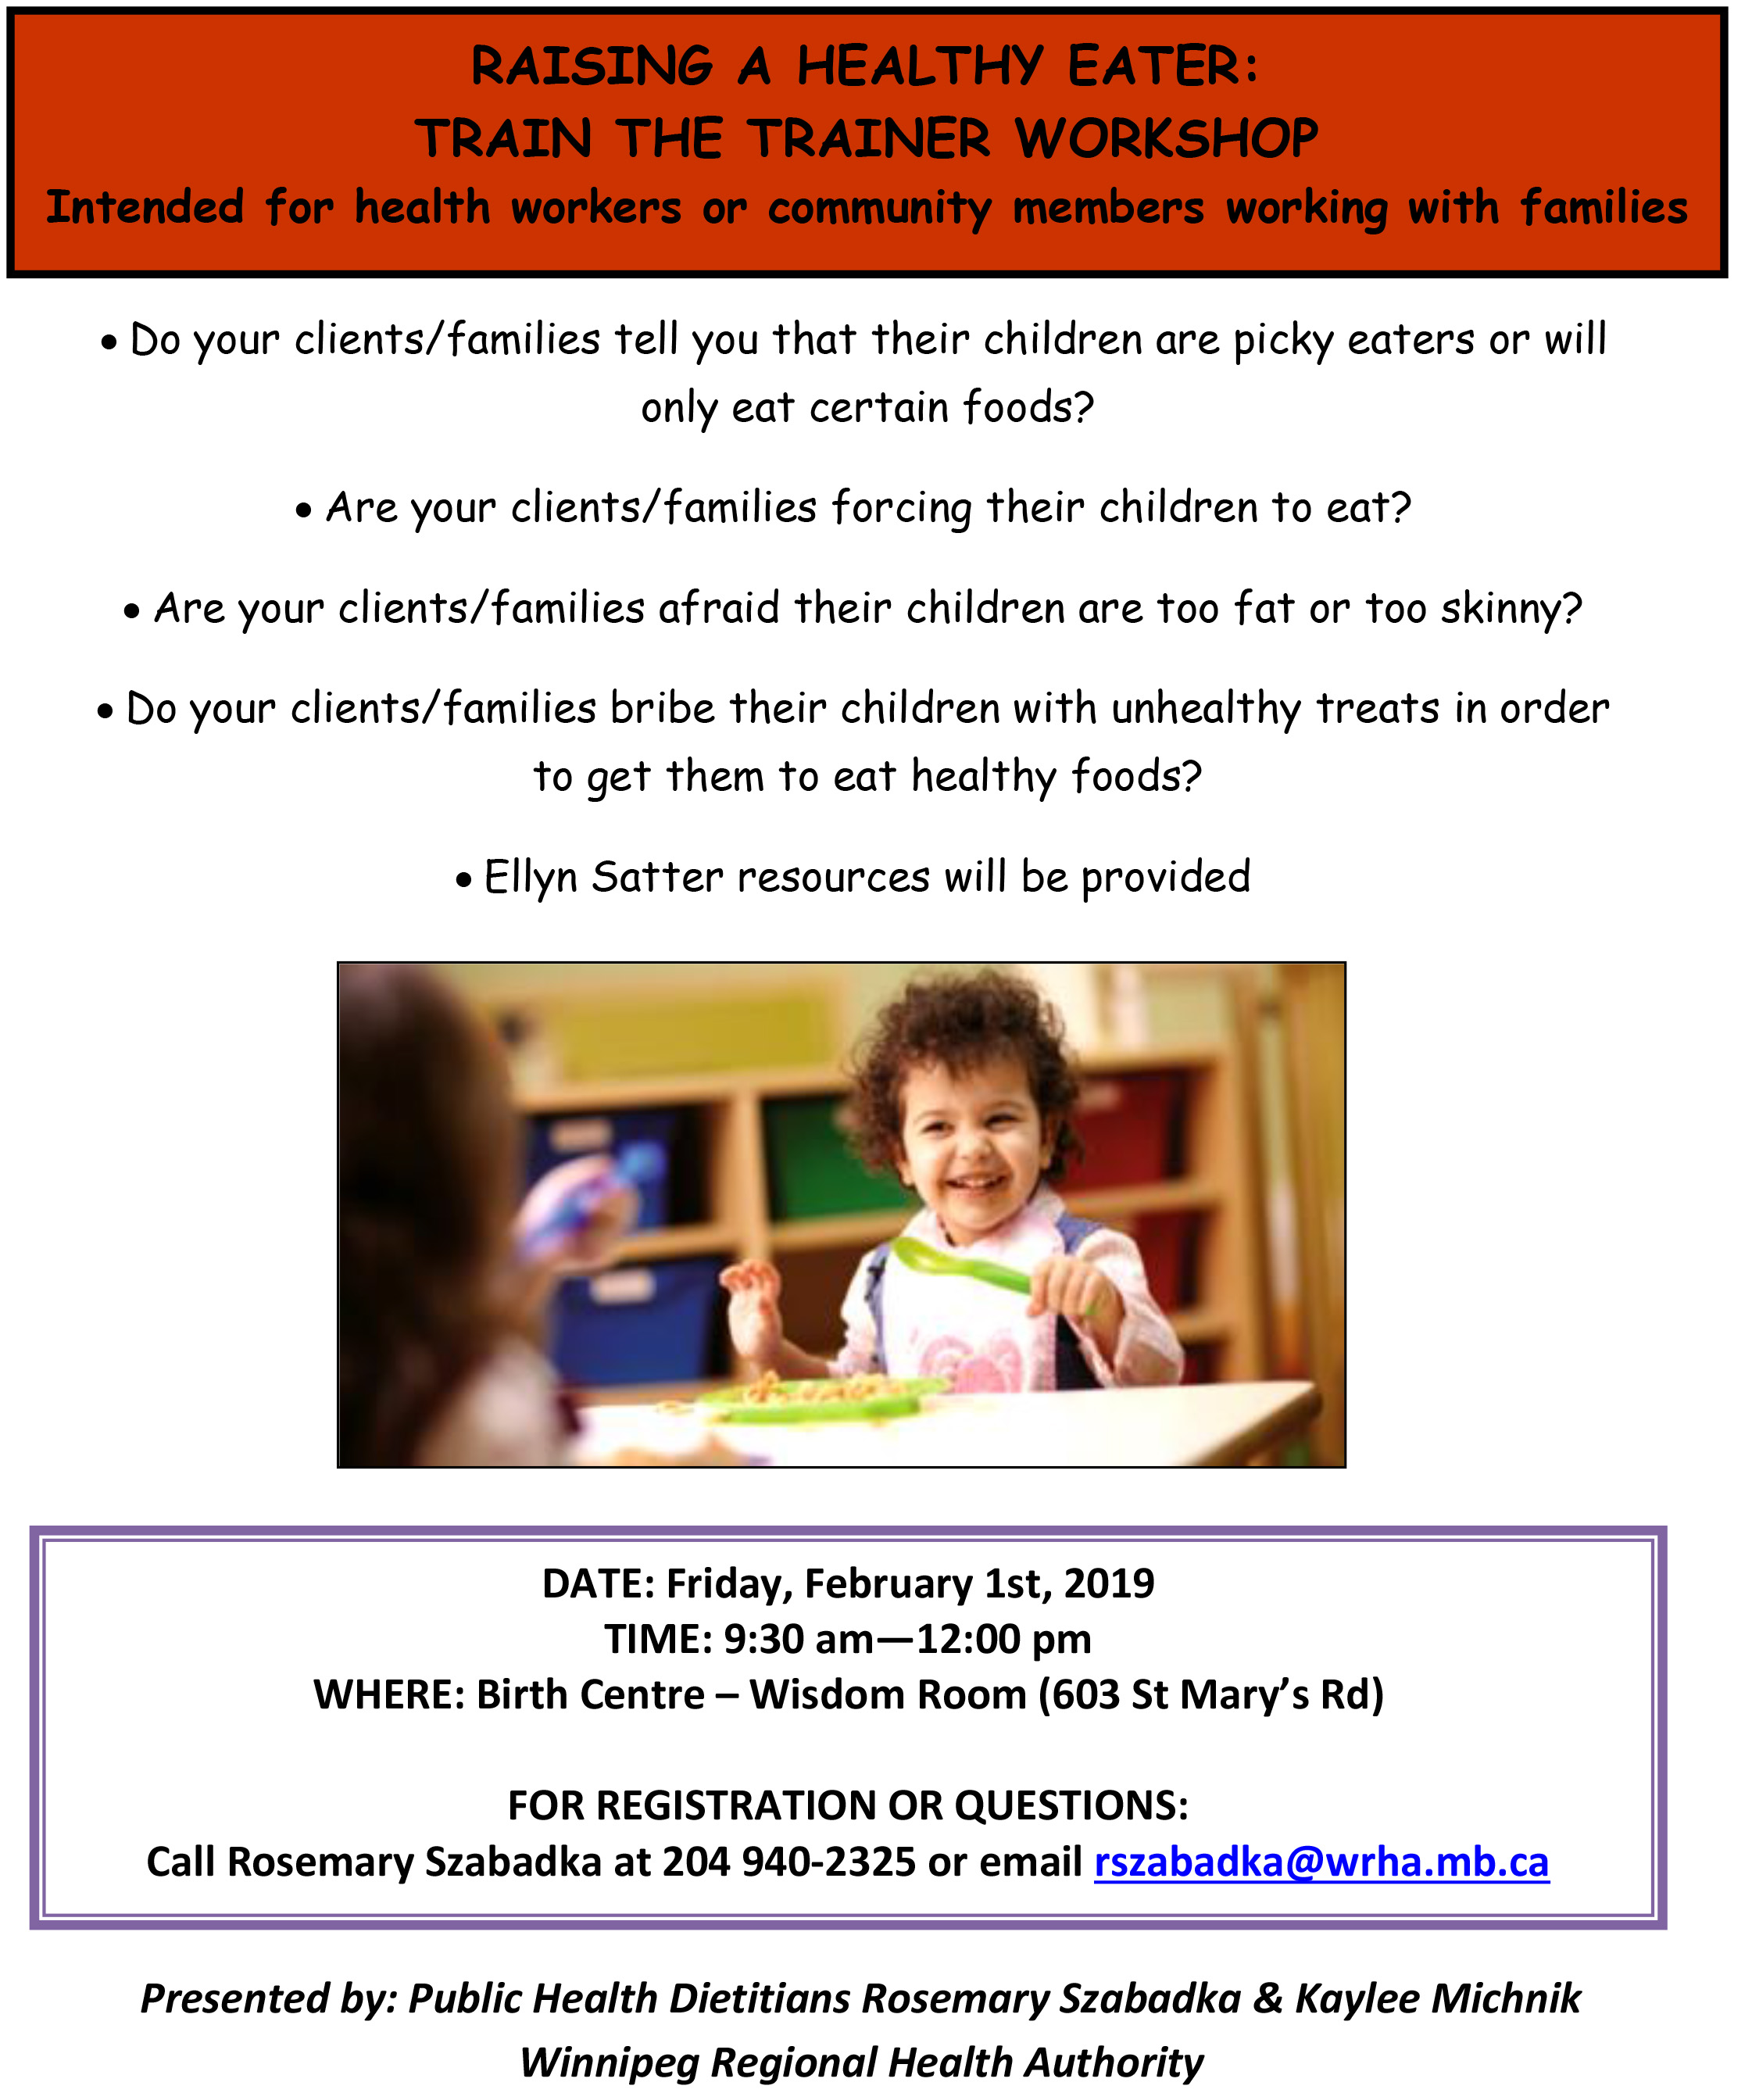 """Raising a Healthy Eater"" Train the Trainer Workshop"